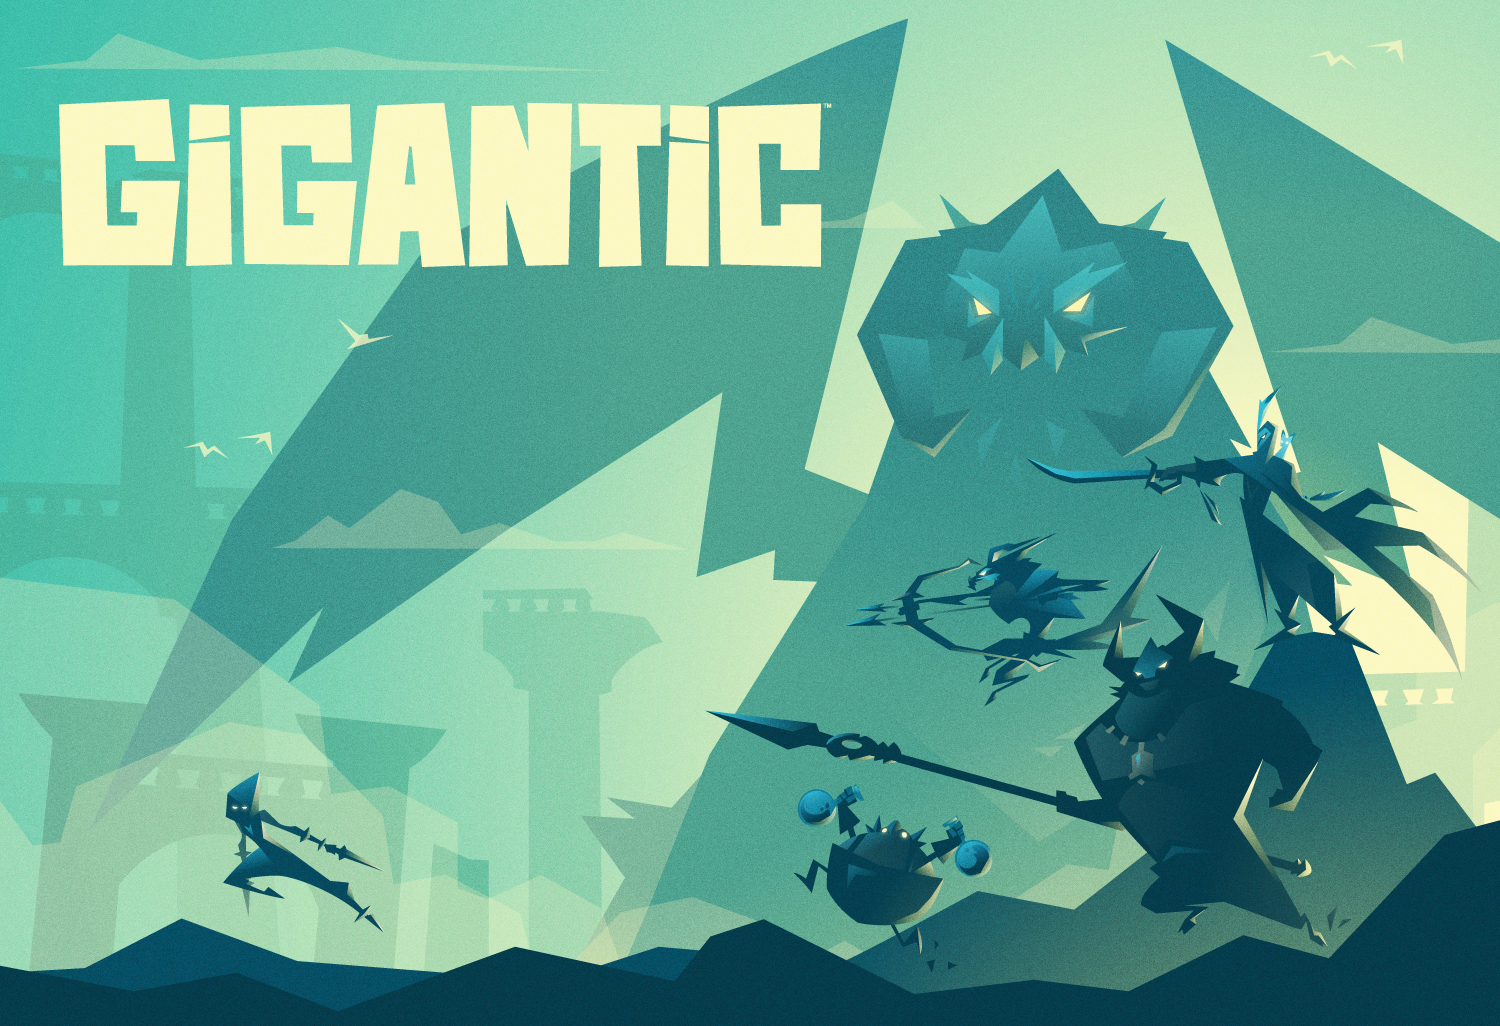 http://vignette2.wikia.nocookie.net/gogigantic/images/c/cb/Gigantic_HorzBanner_Option2.jpg/revision/latest?cb=20140721181149